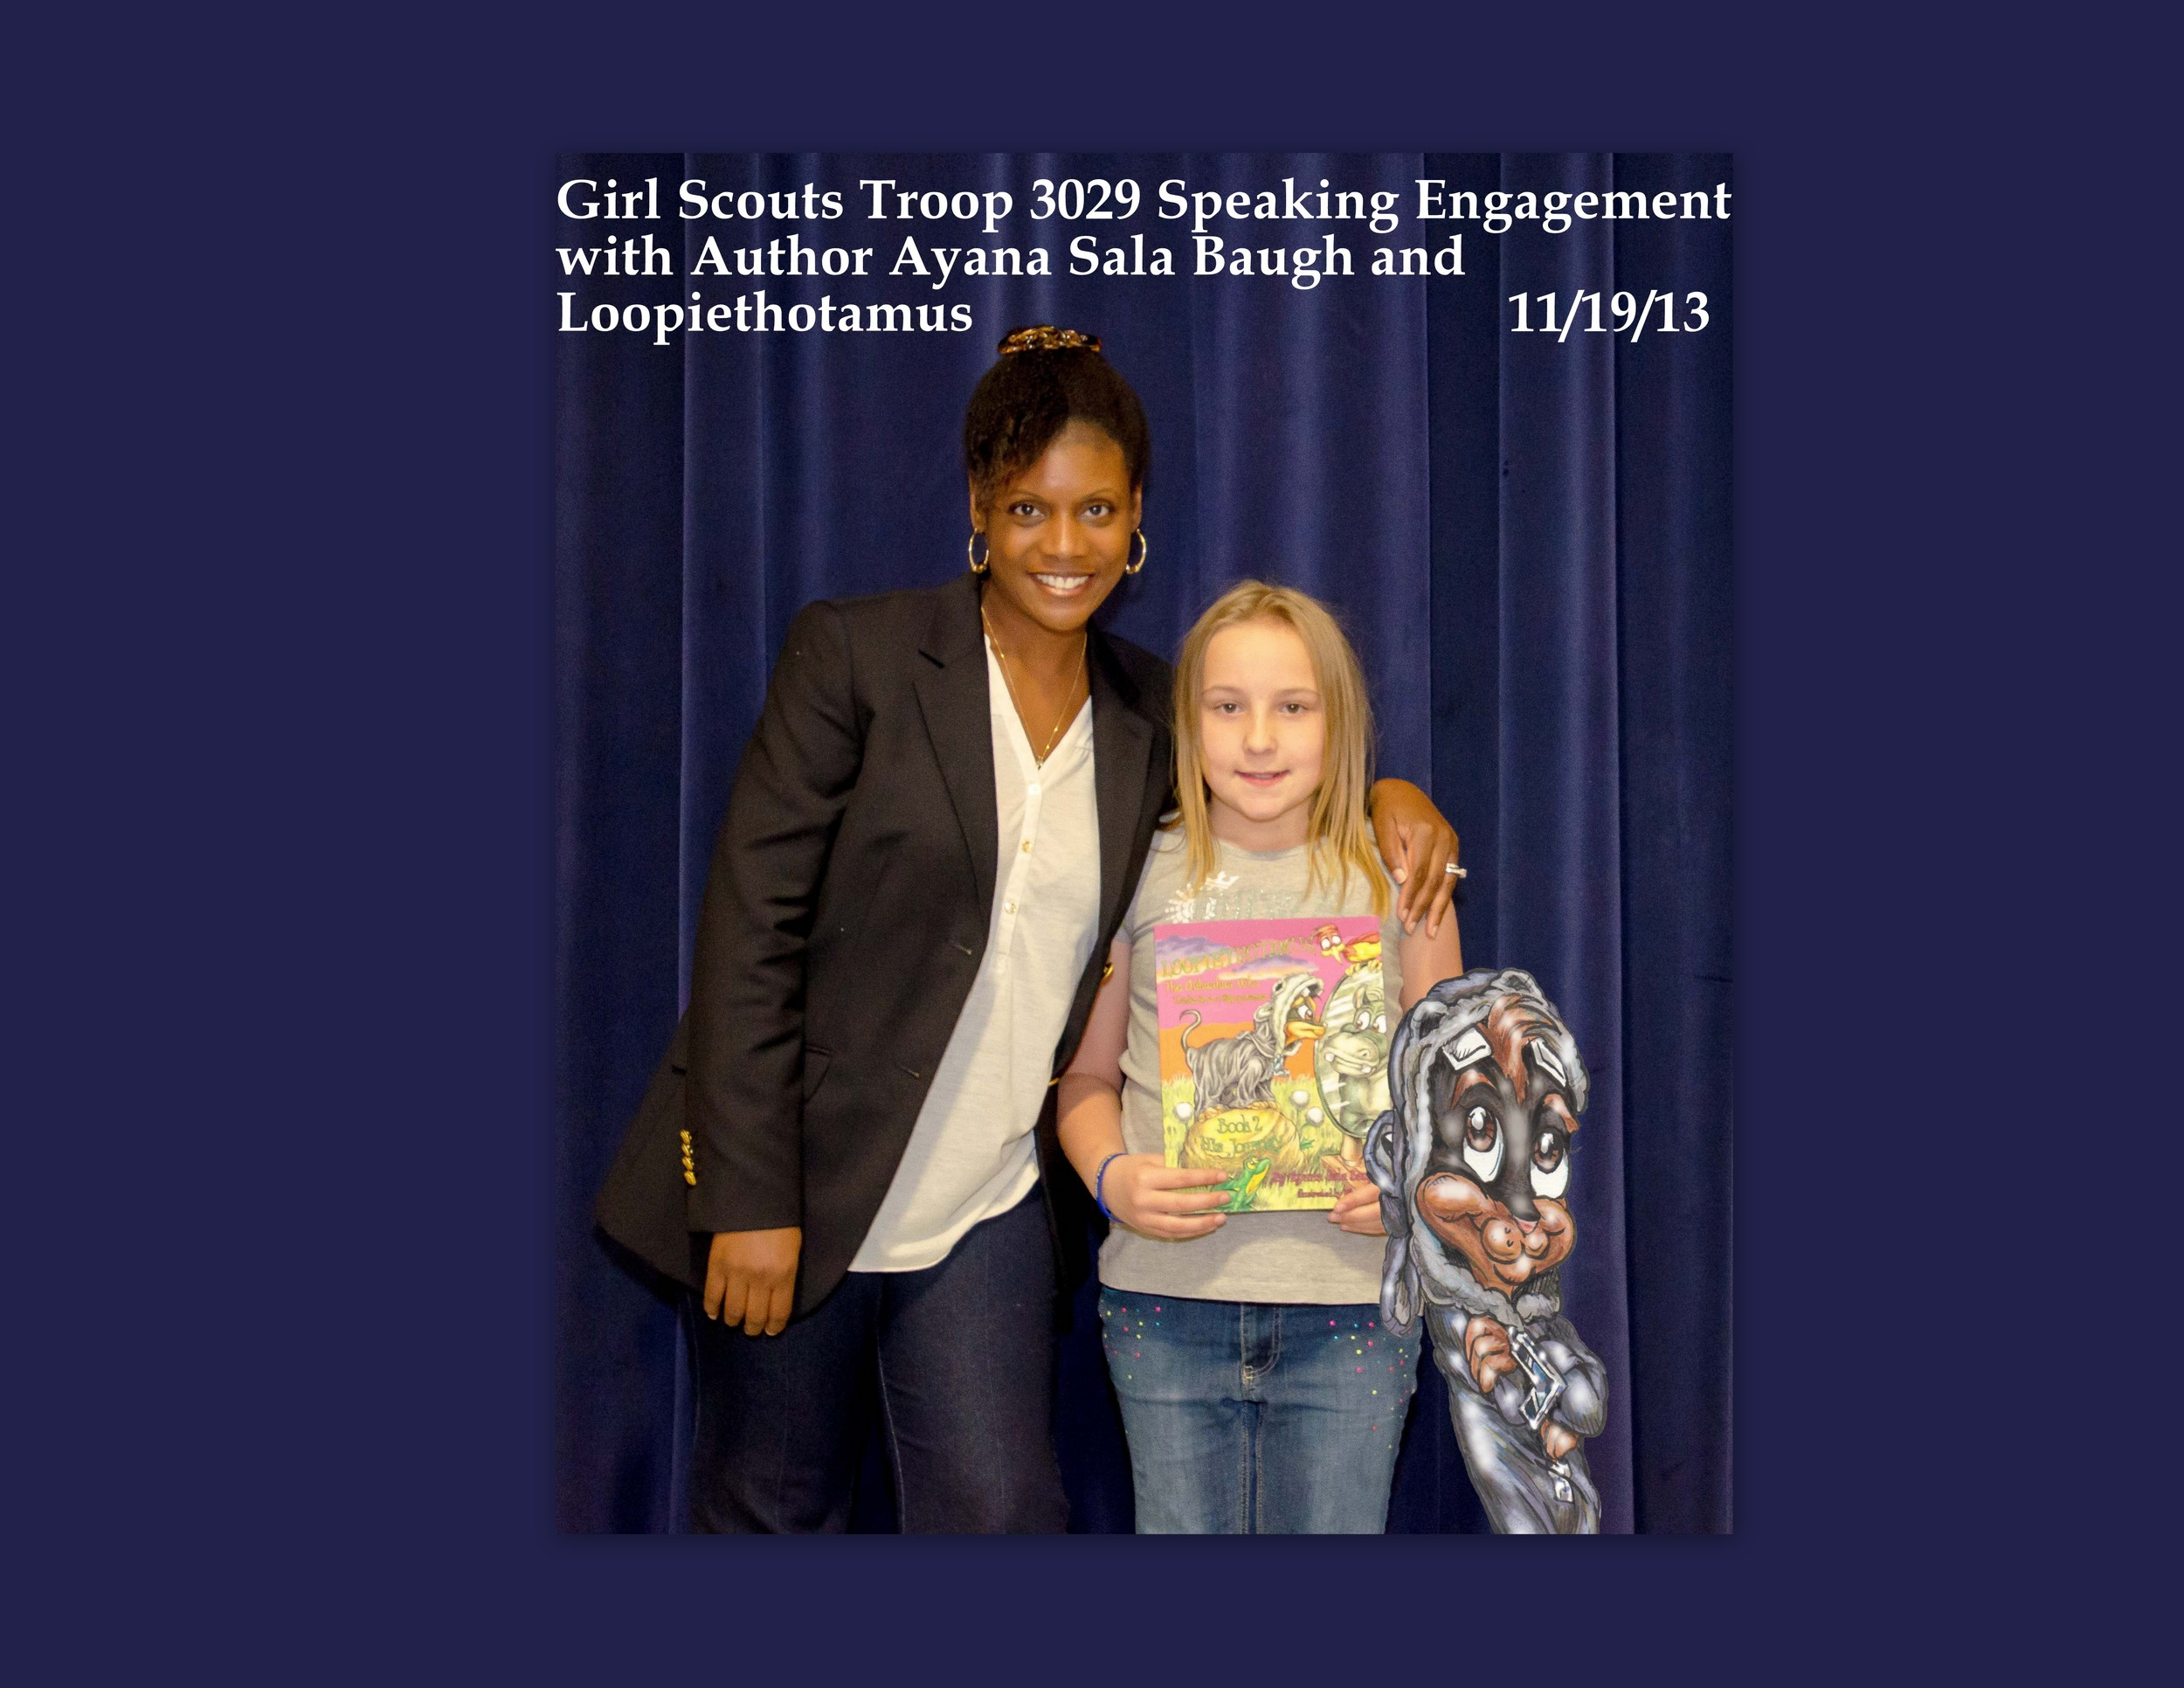 Speaking Engagement with Girl Scouts Troop 3029 111913 3.jpg